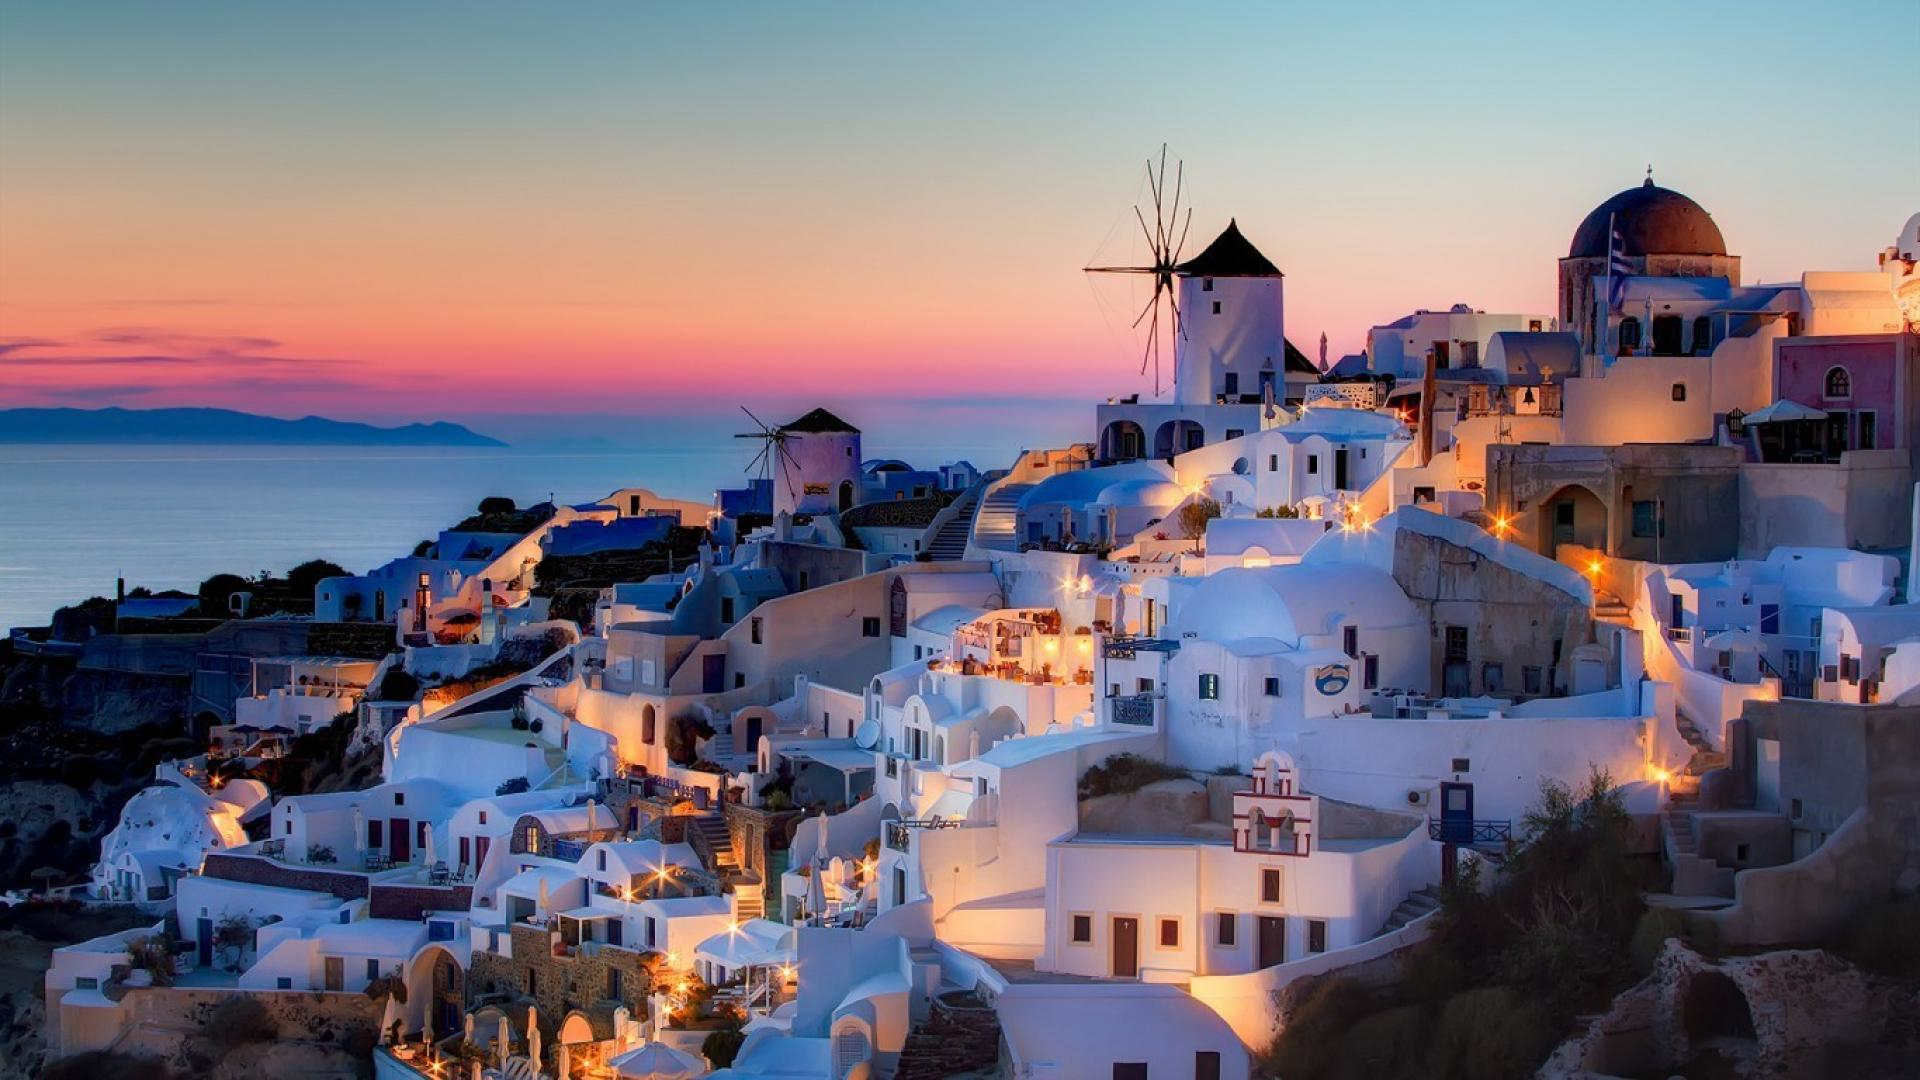 santorini-greece-wallpapers-